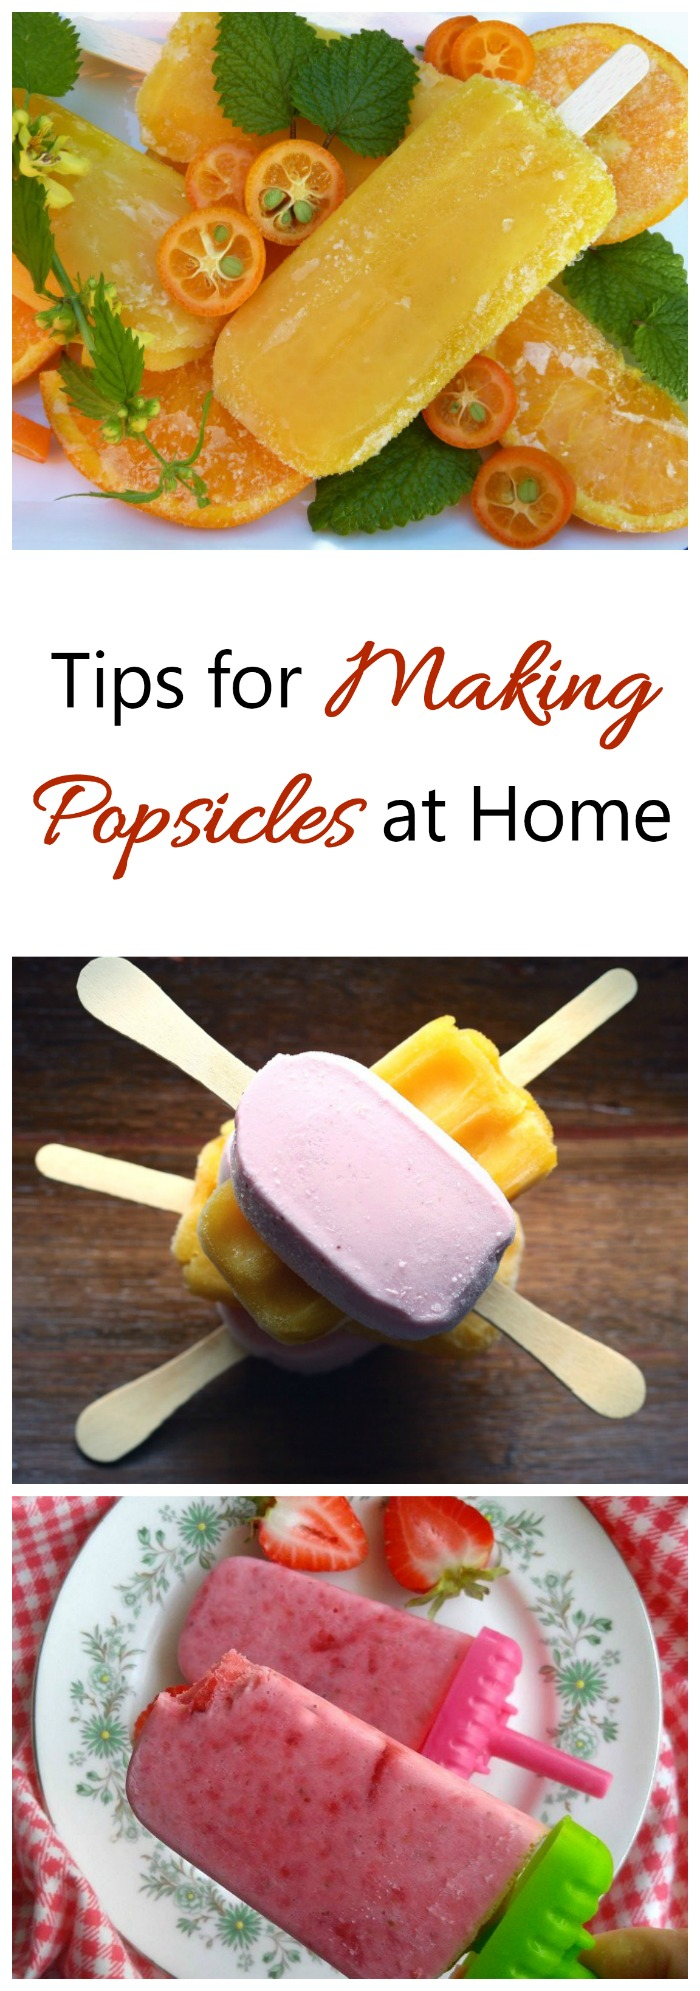 Making popsicles is more than pouring fruit juice into a mold. See these tips for great tasting popsicles that are not just a block of ice.